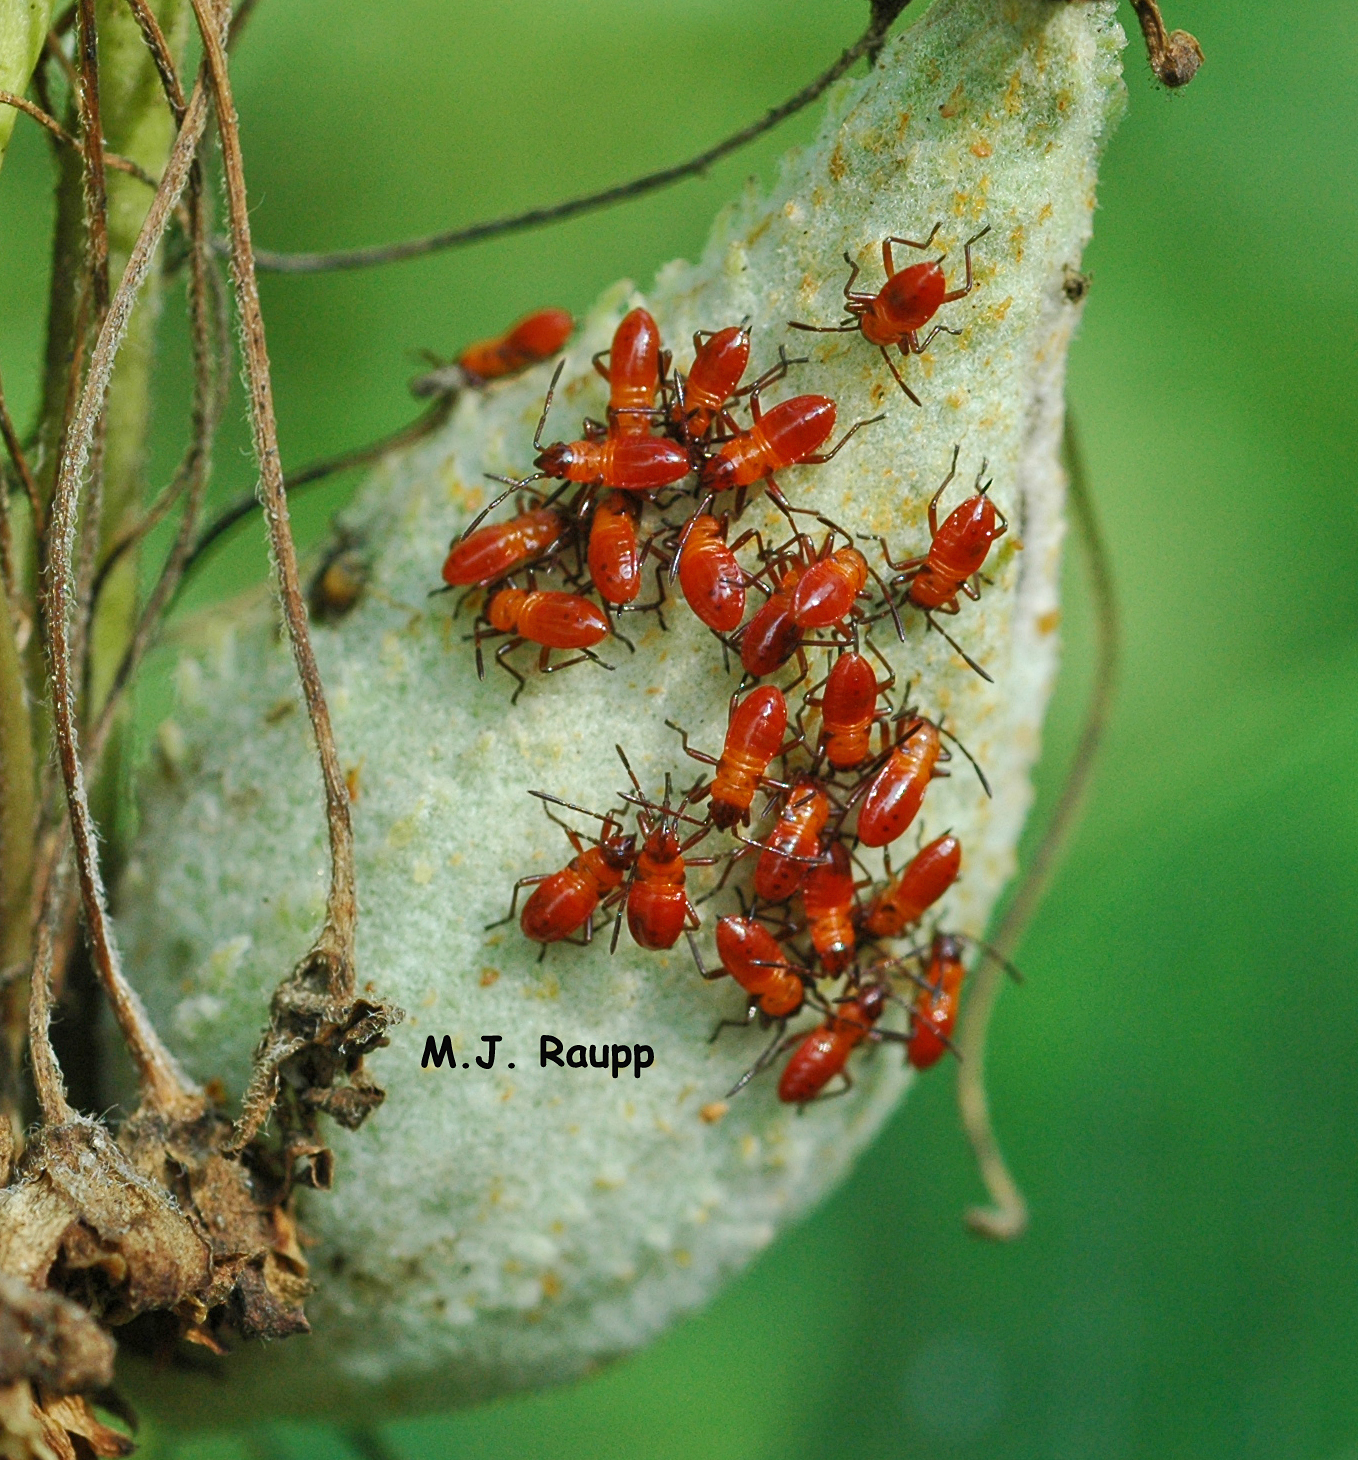 Milkweed bugs prefer seed pods to leaves when dining on milkweed.